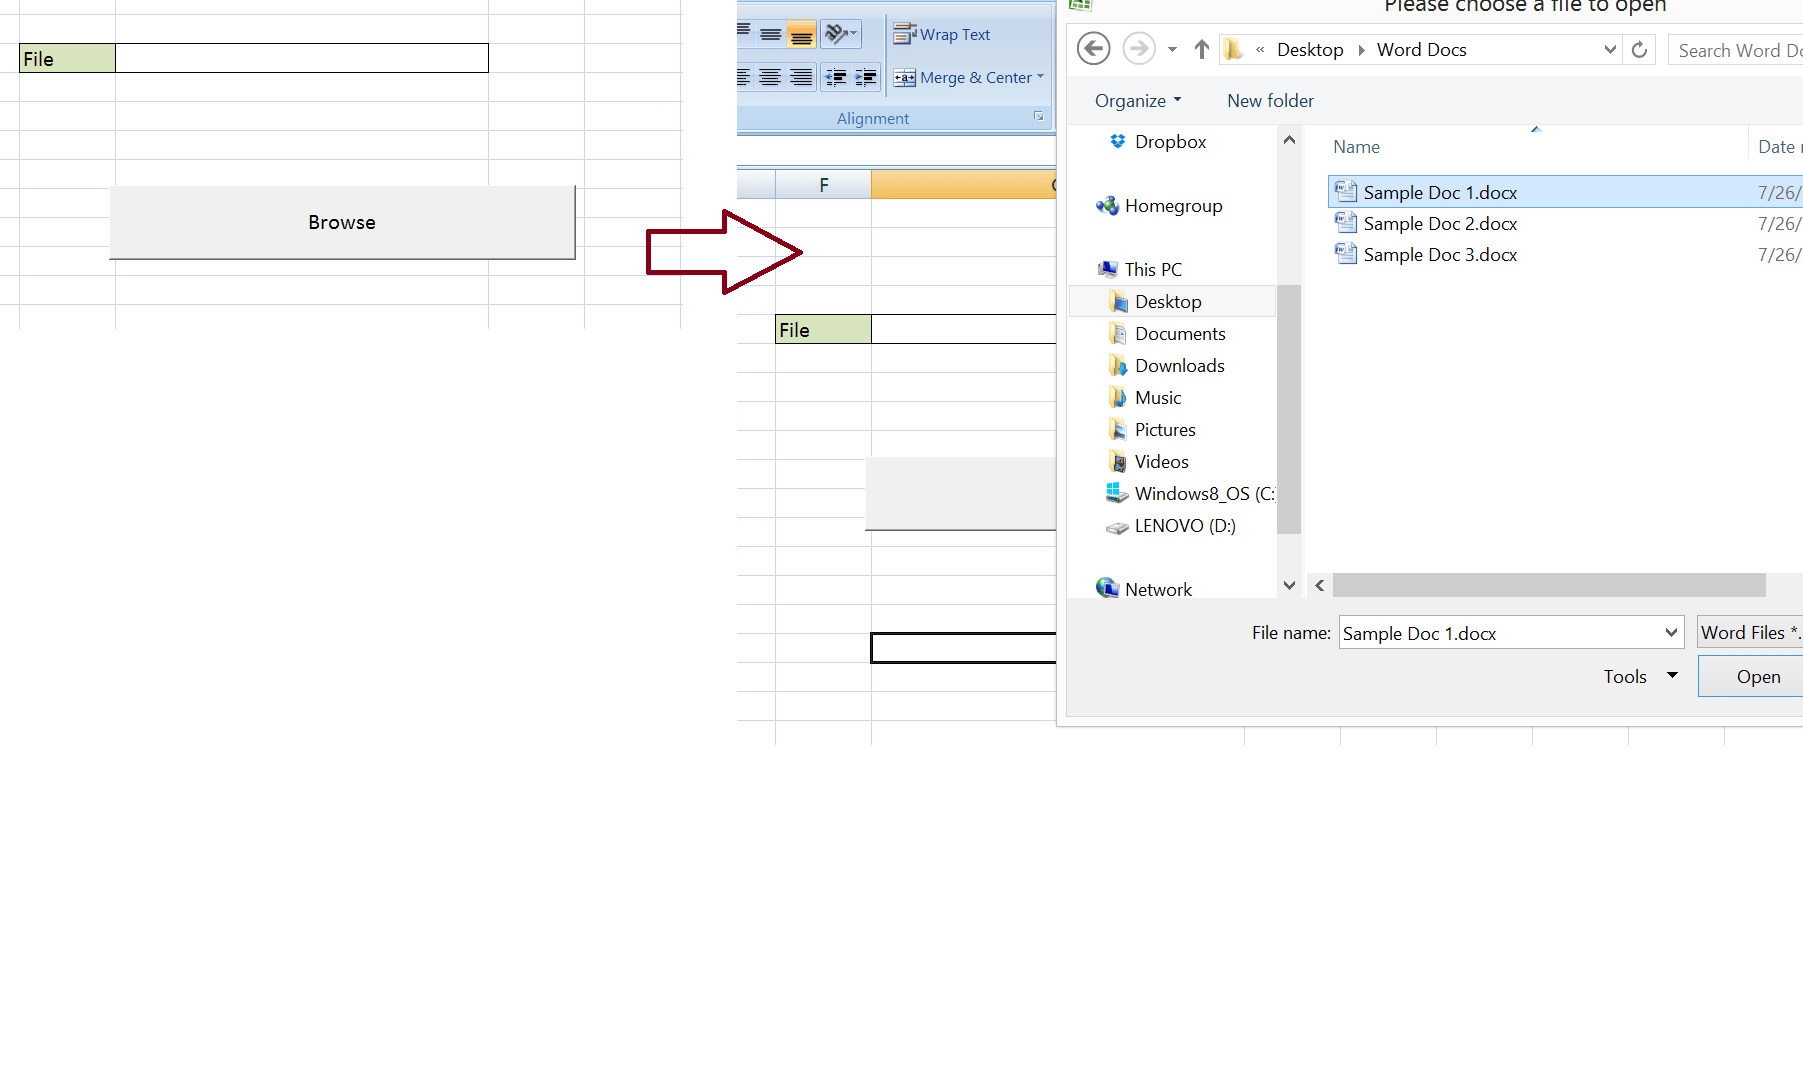 Excel Vba Check If File Open Another User